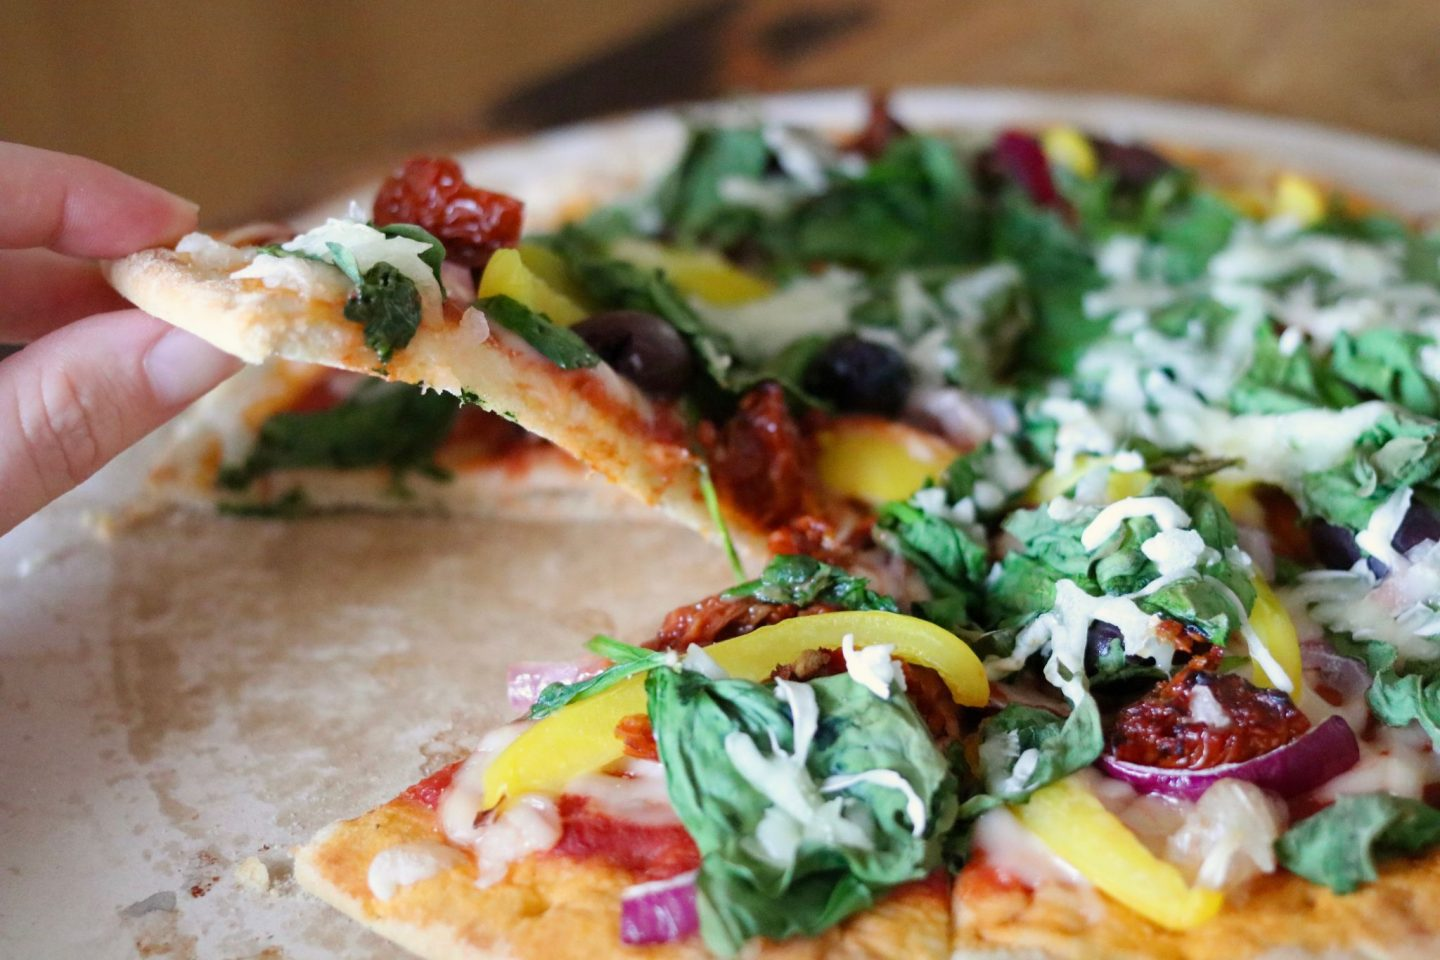 Create Your Own Vegan Pizza - picking up a slice of pizza